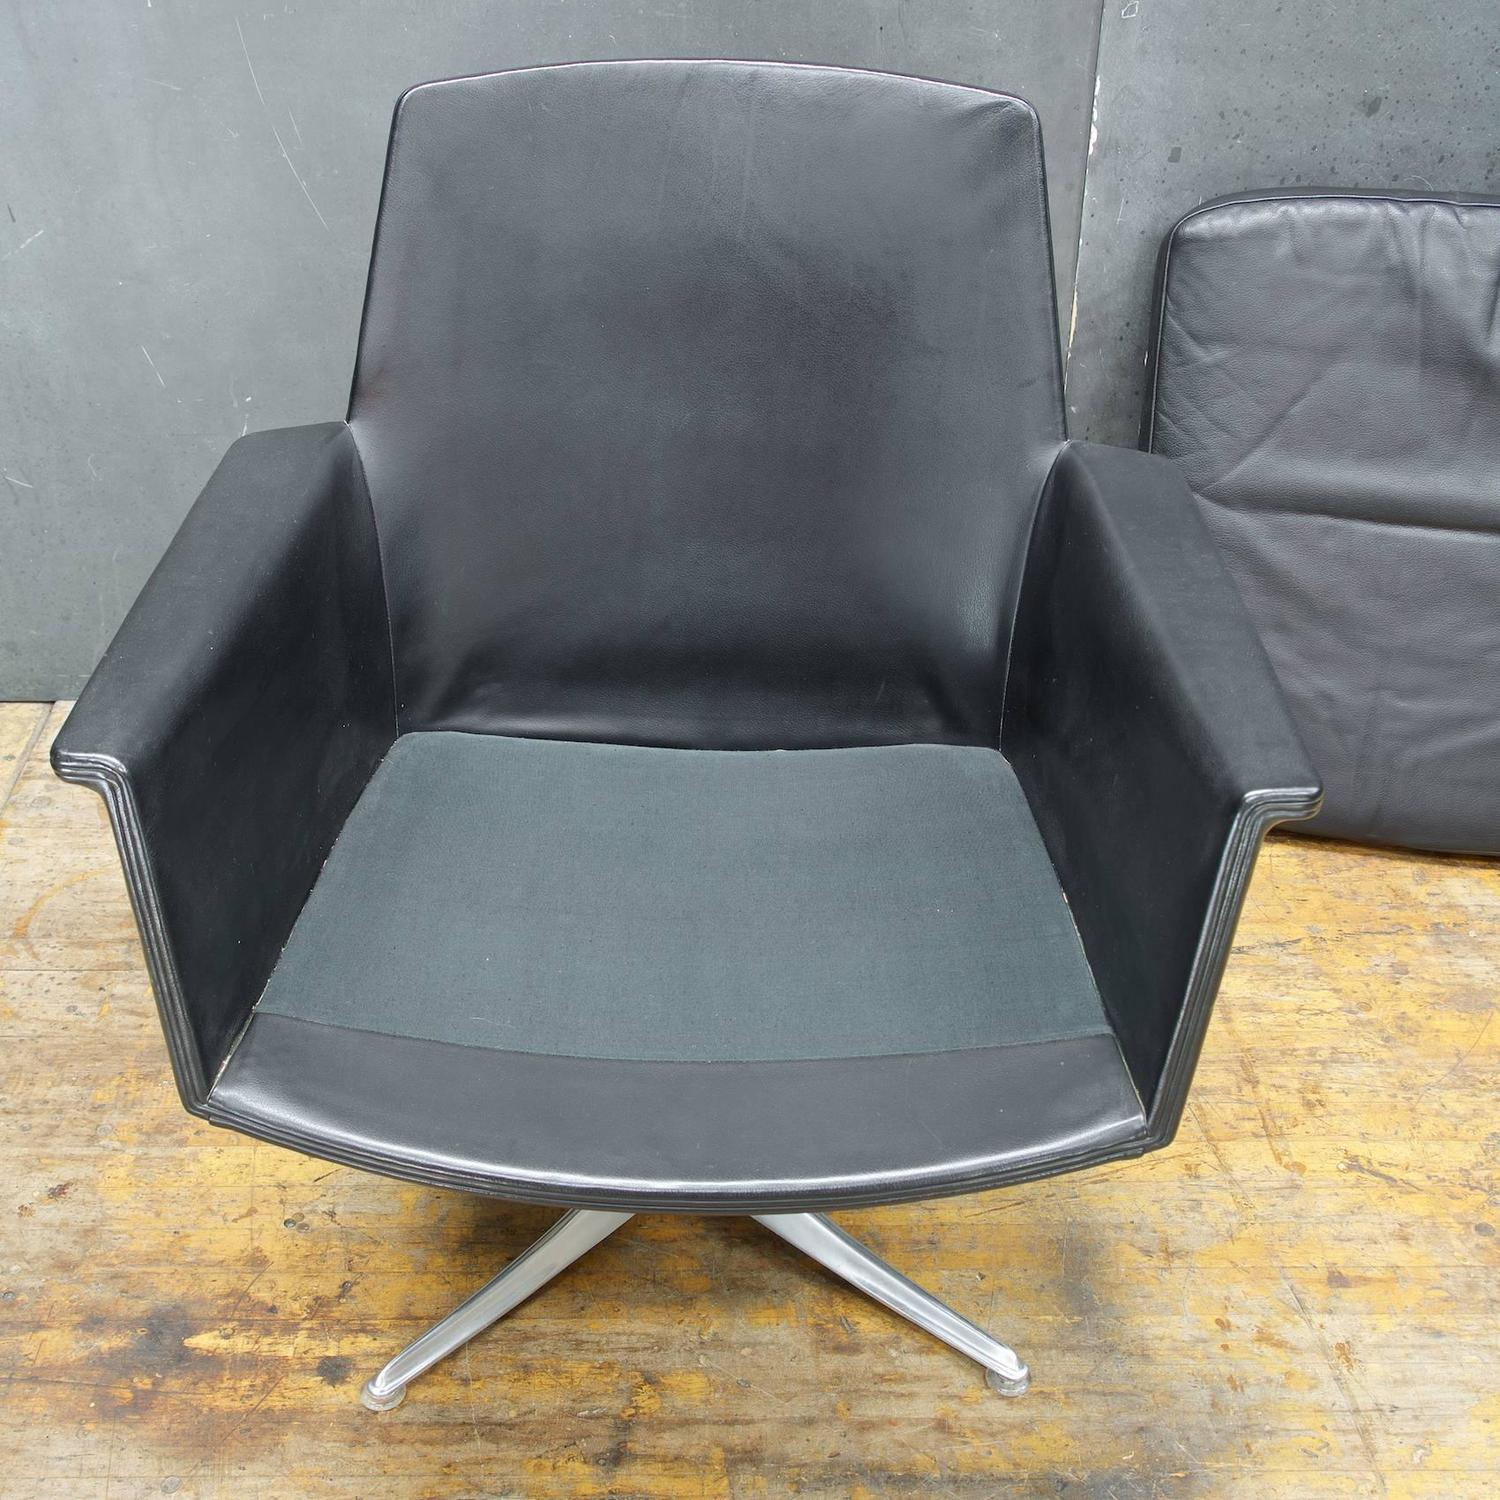 black leather swivel lounge chair office chairs without wheels by horst bruning for cor